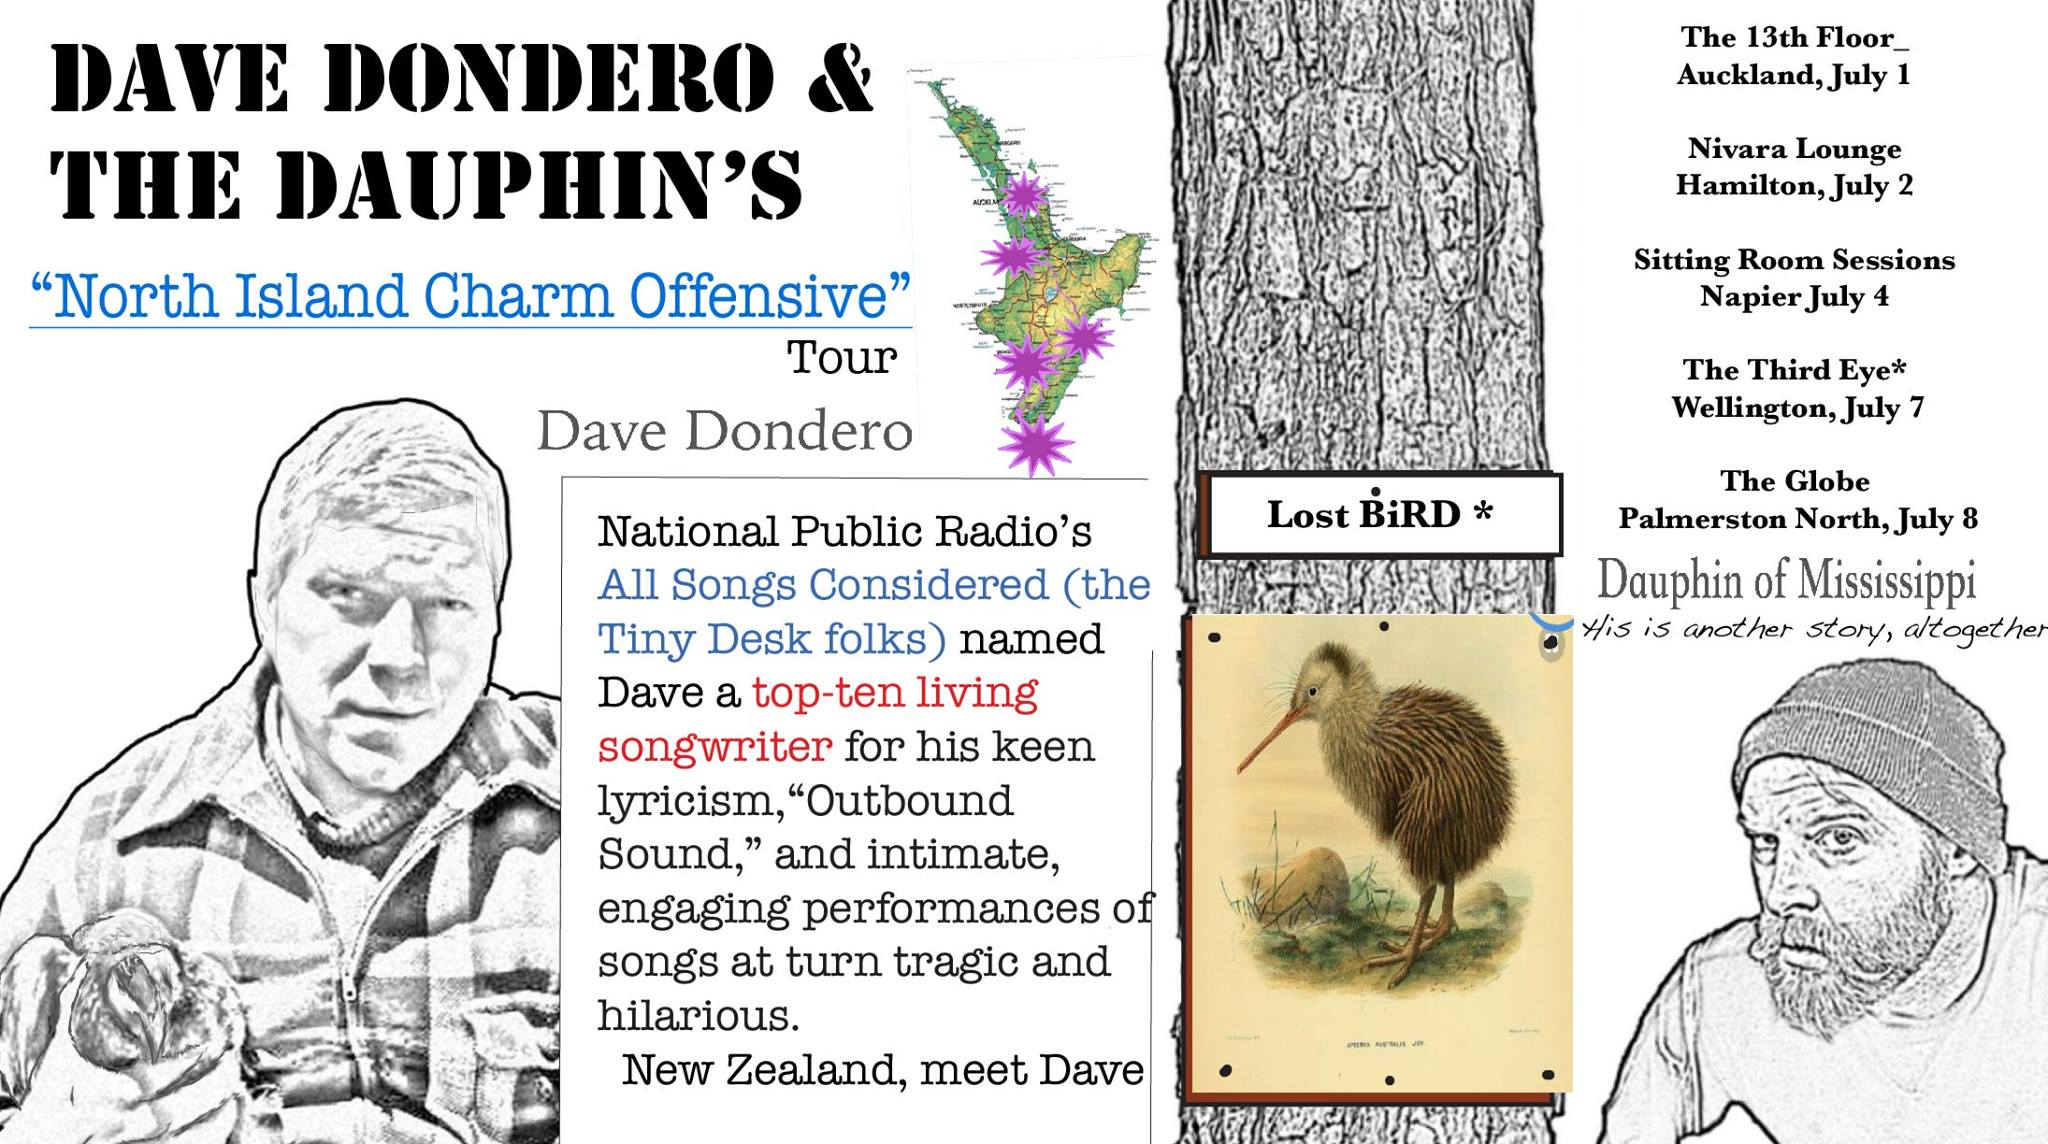 Dave Dondero and The Dauphins